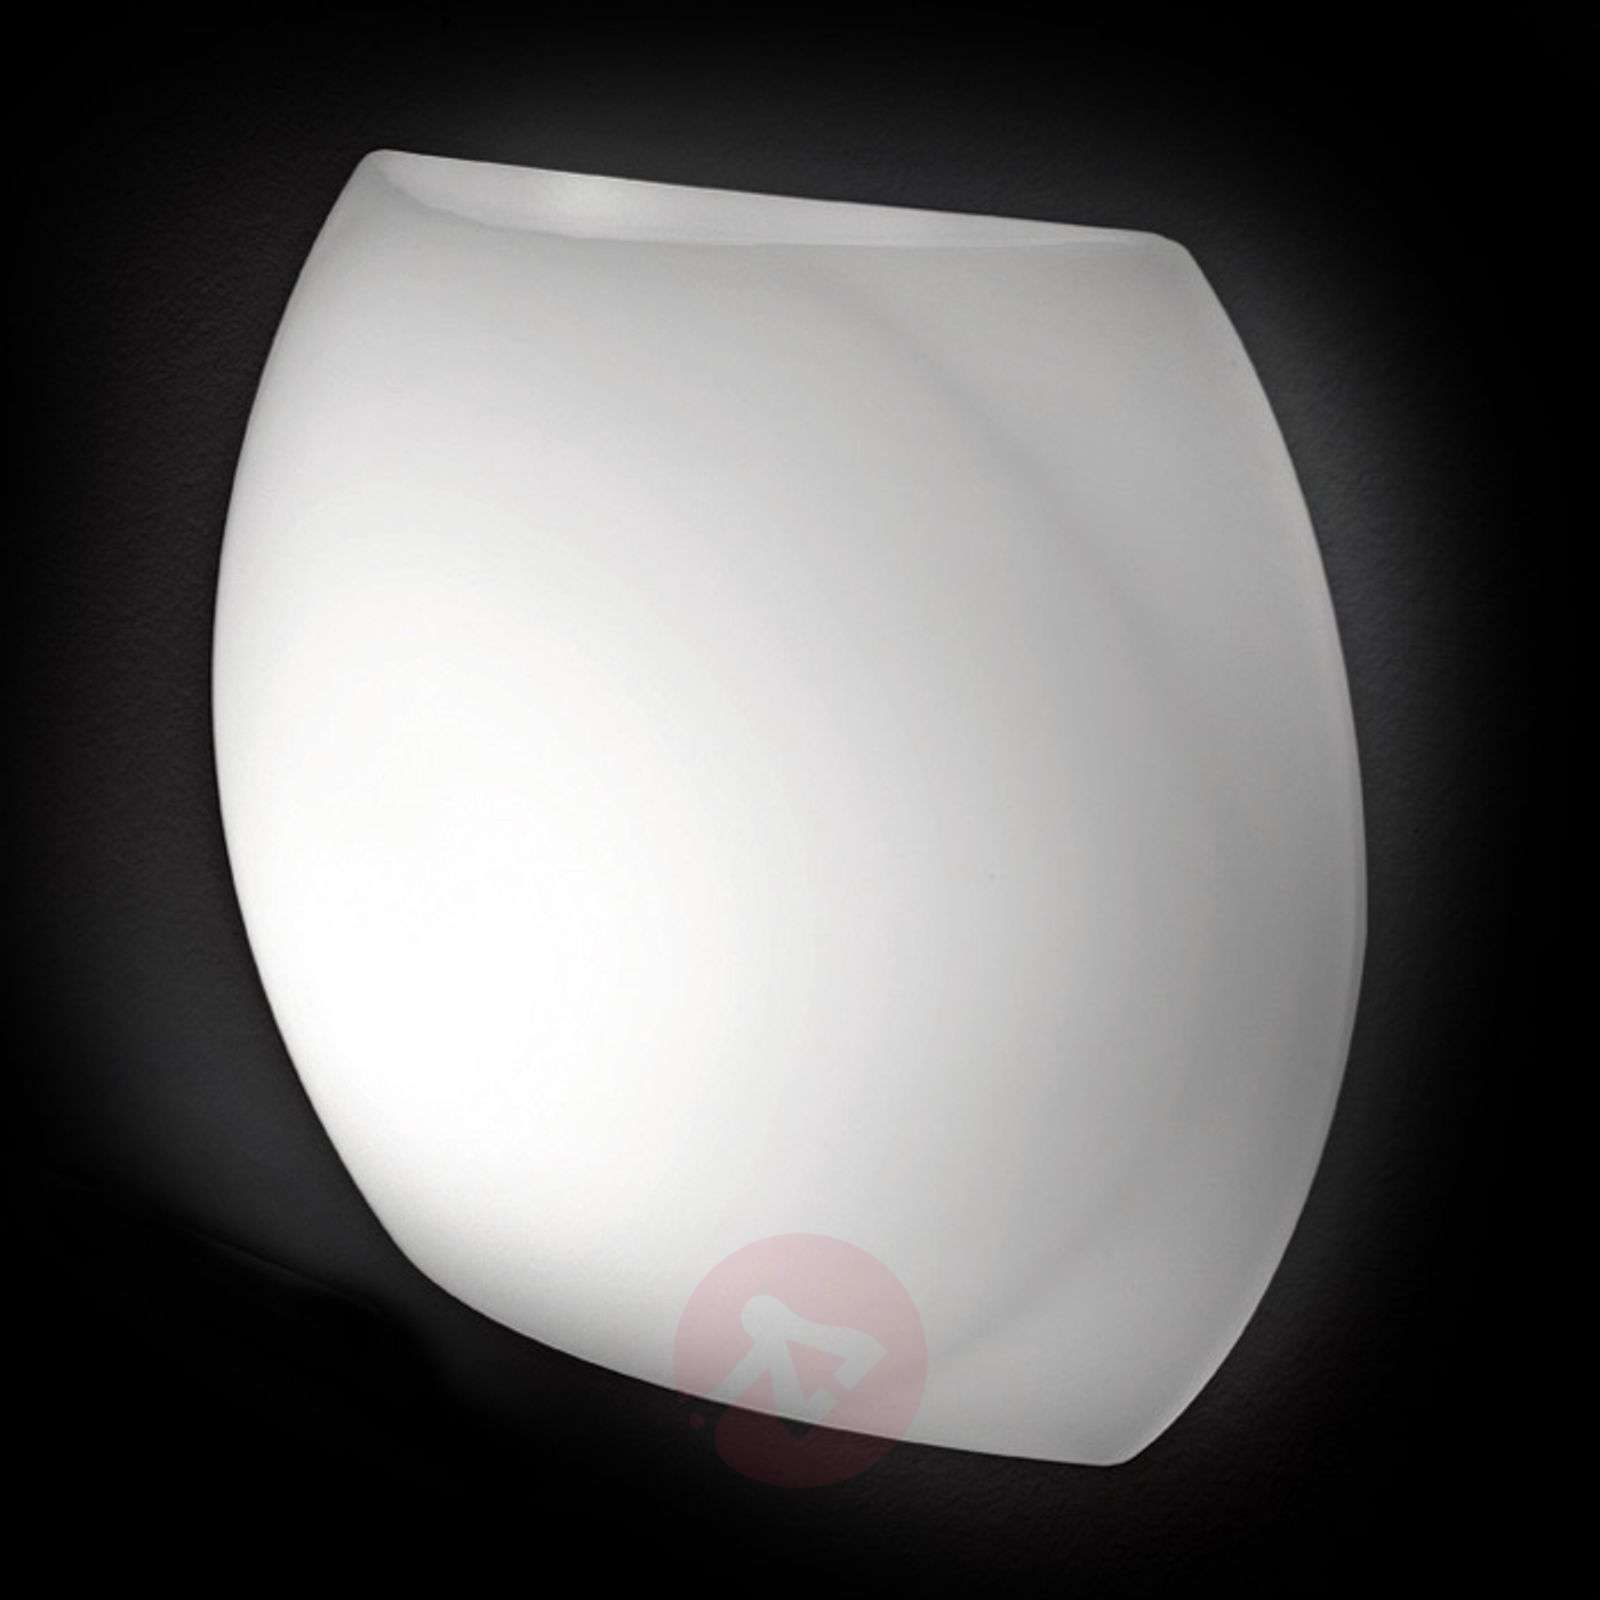 Chiusa wall light-1053043X-01